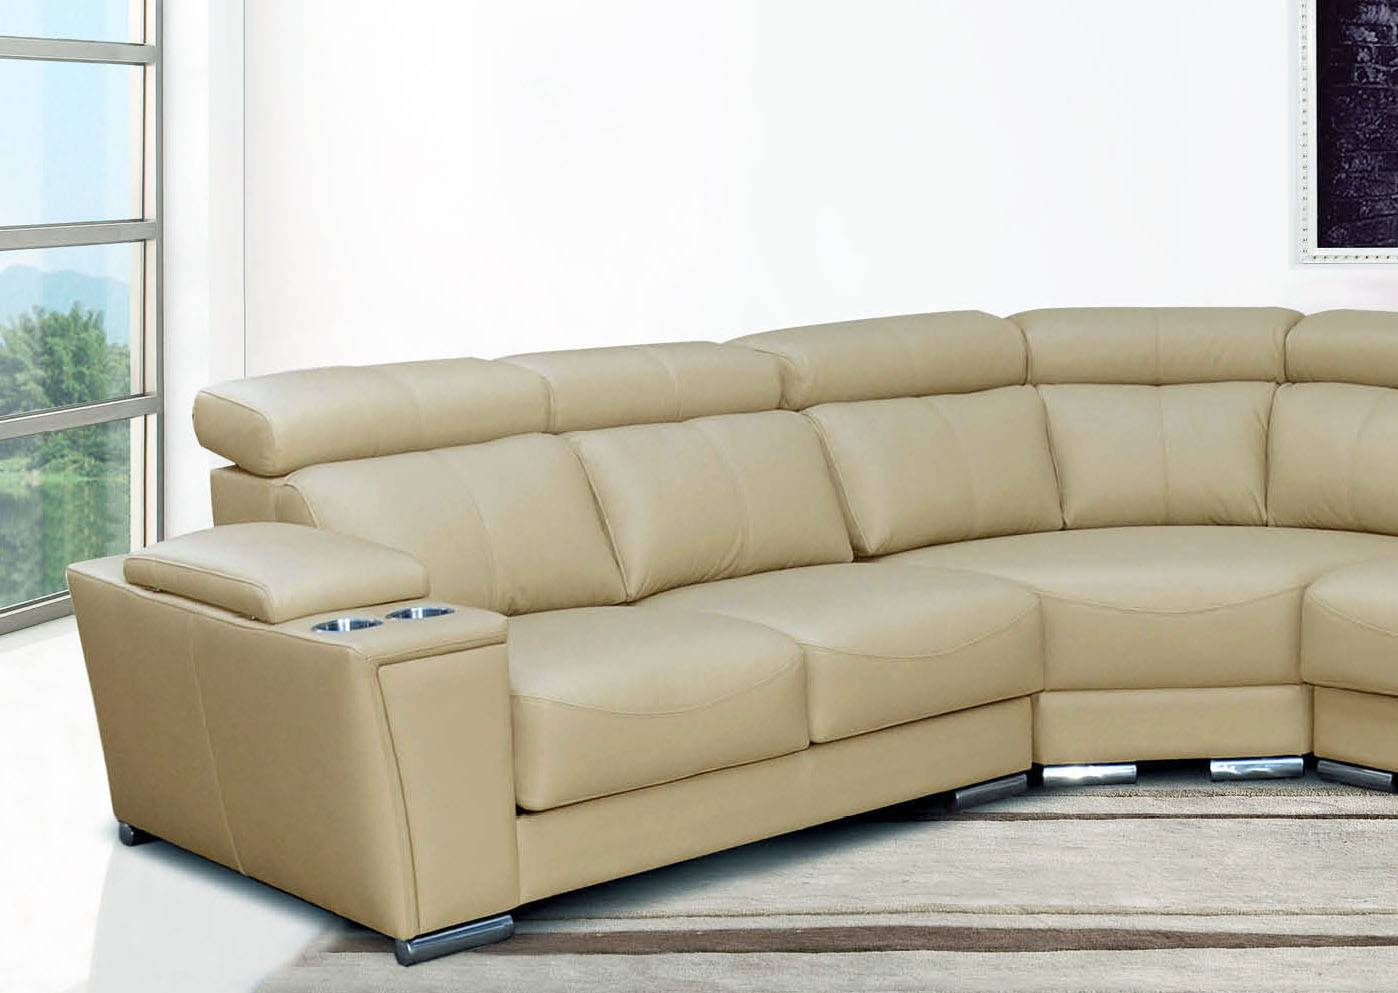 very large sectional sofas dwell stylus sofa bed cream italian leather extra with cup